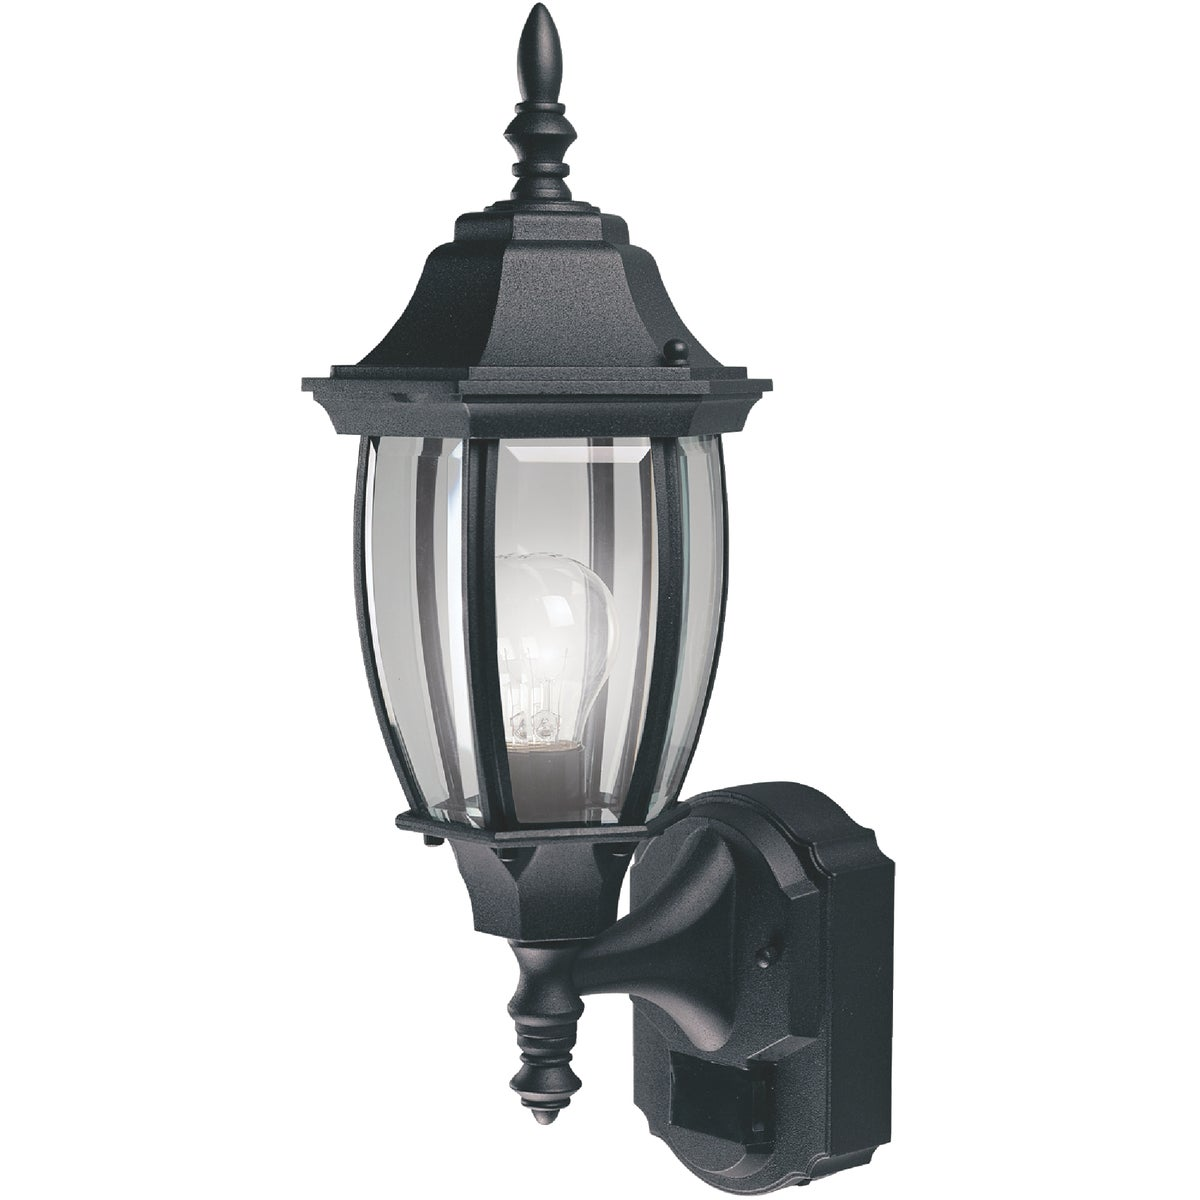 BLACK MOTION FIXTURE - SL-4192-BK-A by Heathco Llc